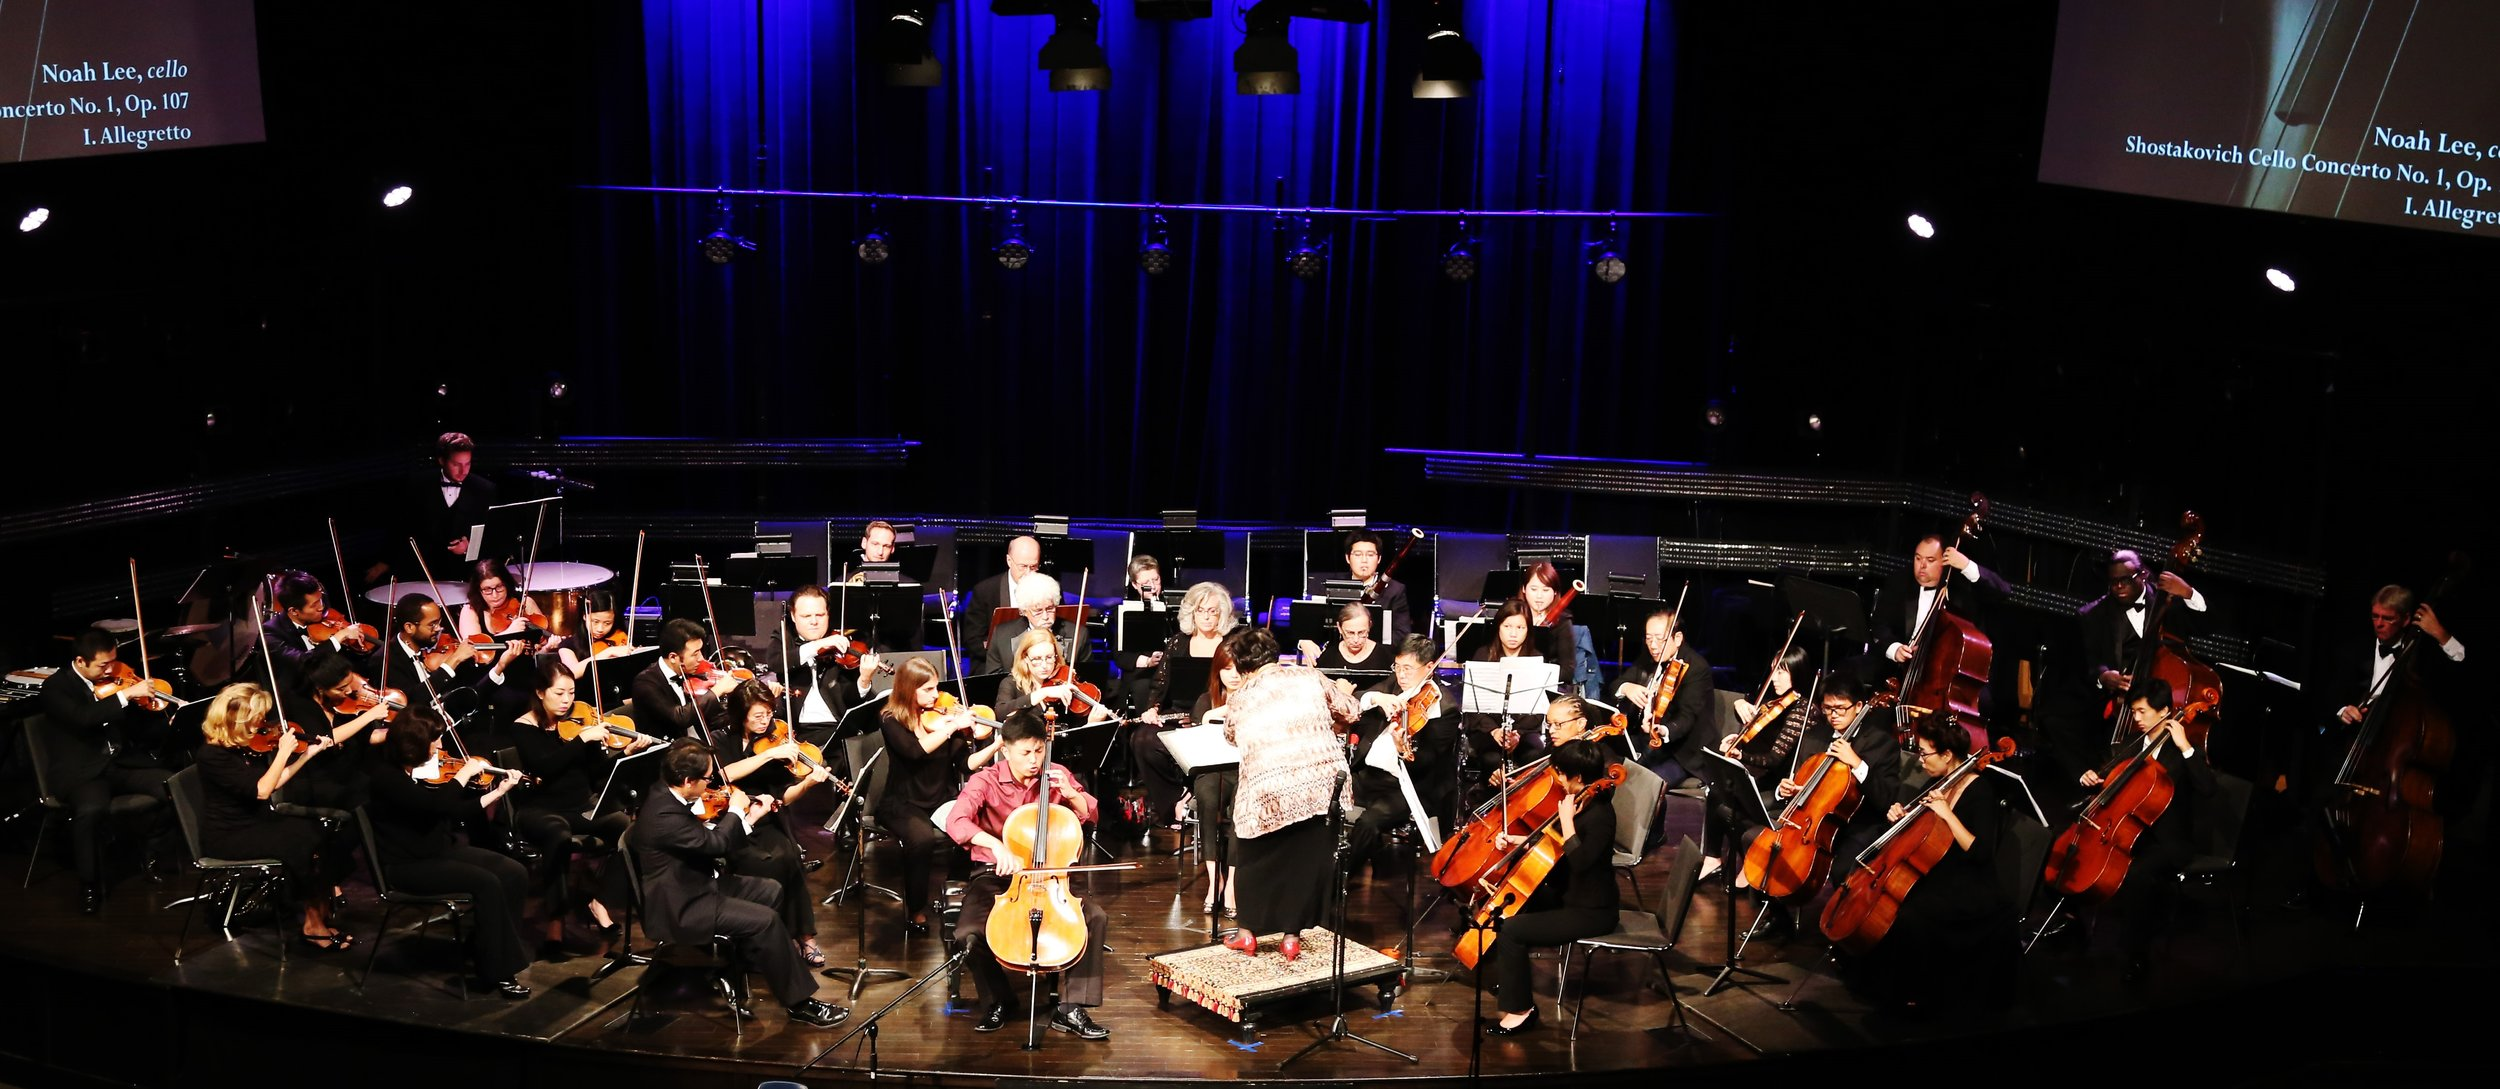 A fabulous performance of the Shostakovitch Cello Concerto